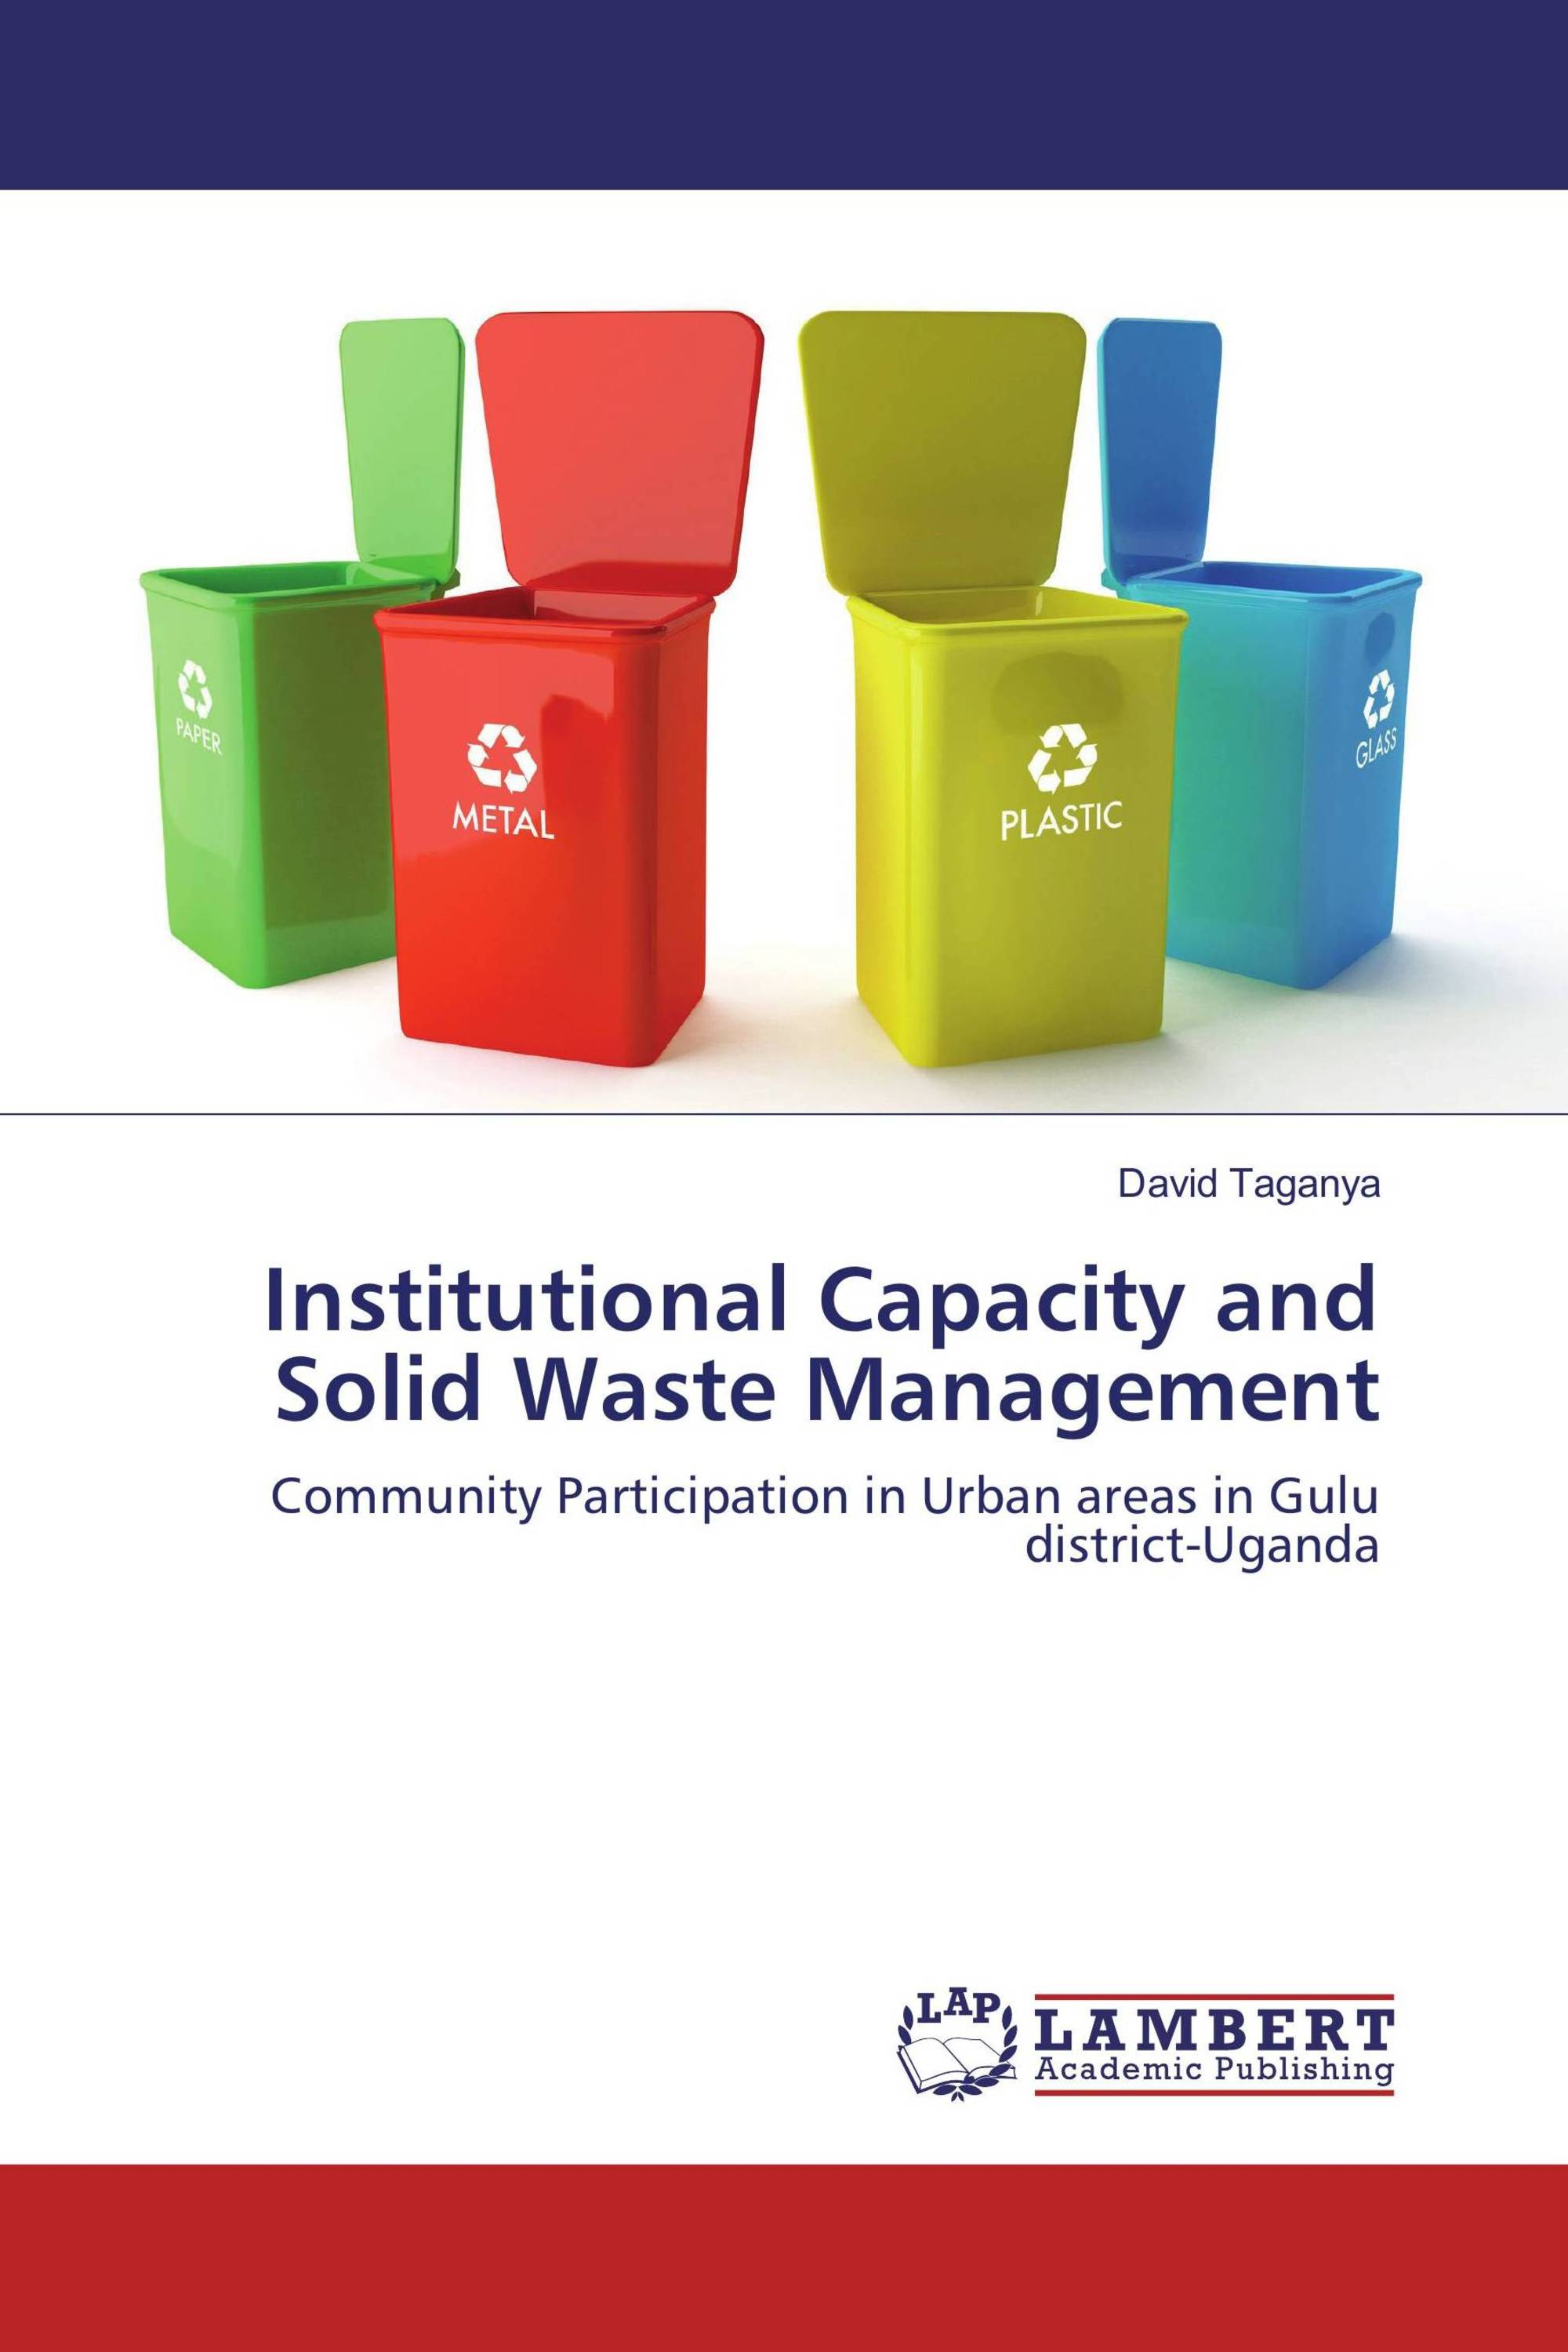 community participation n solid waste management Waste management and water supply projects: in community-based solid waste management study in the field of community participation in waste management.